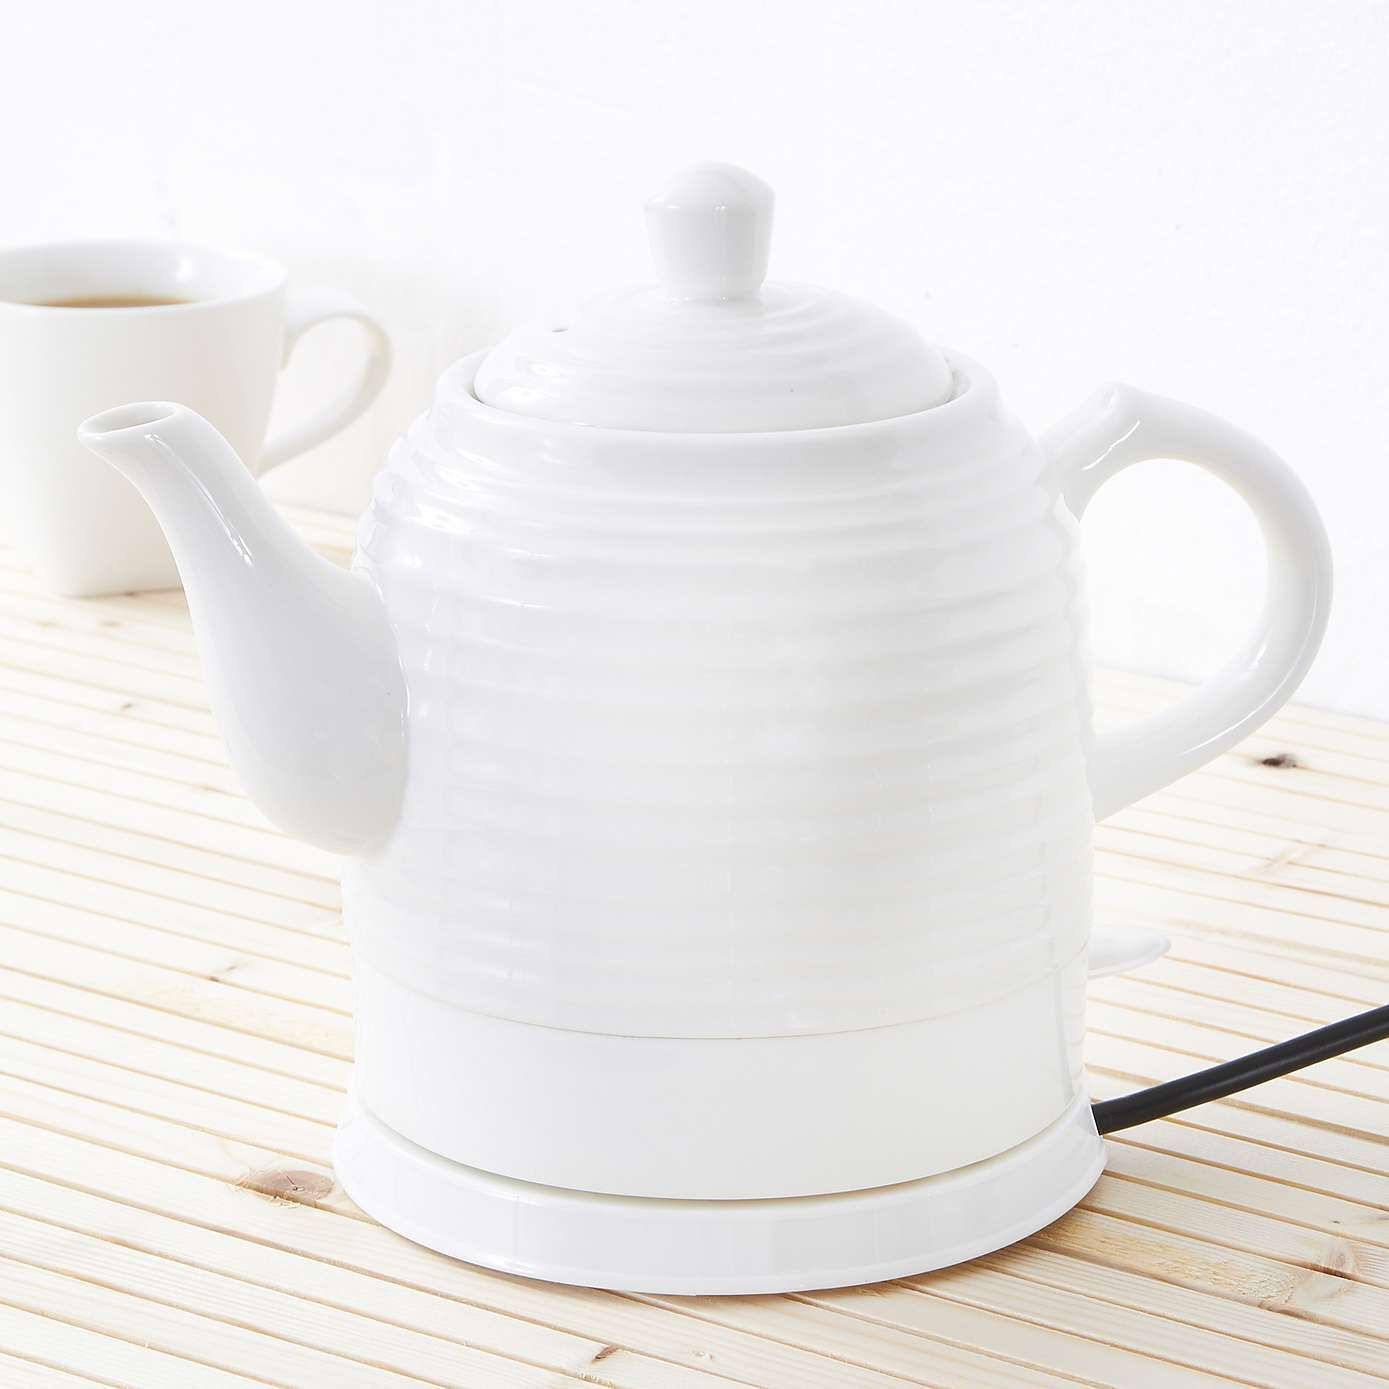 Vintage Ripple White Ceramic Kettle Dunelm 29 99 There